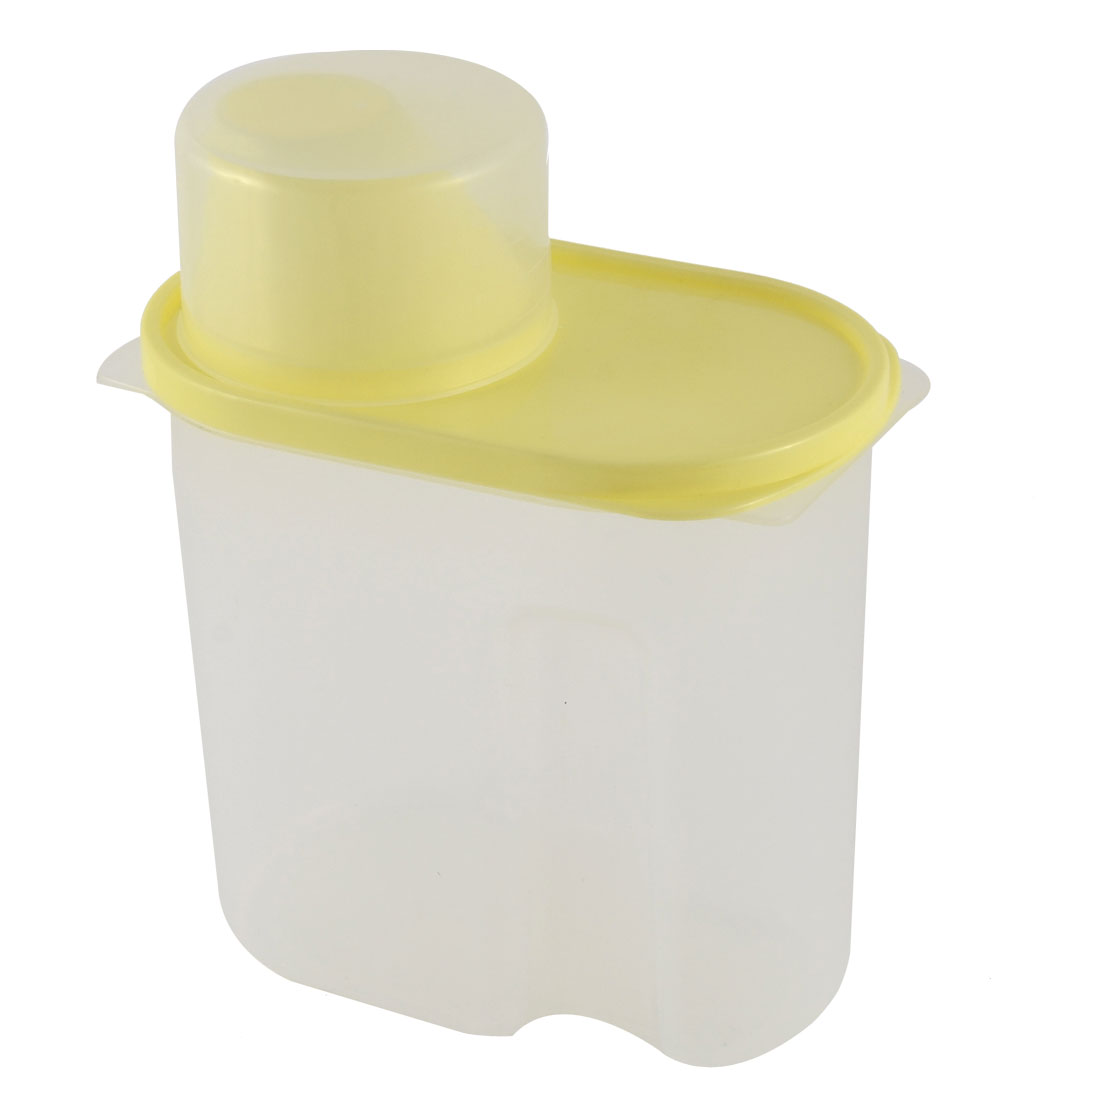 Household Kitchenware Plastic Food Storage Box Airtight Seal Holder Container Yellow